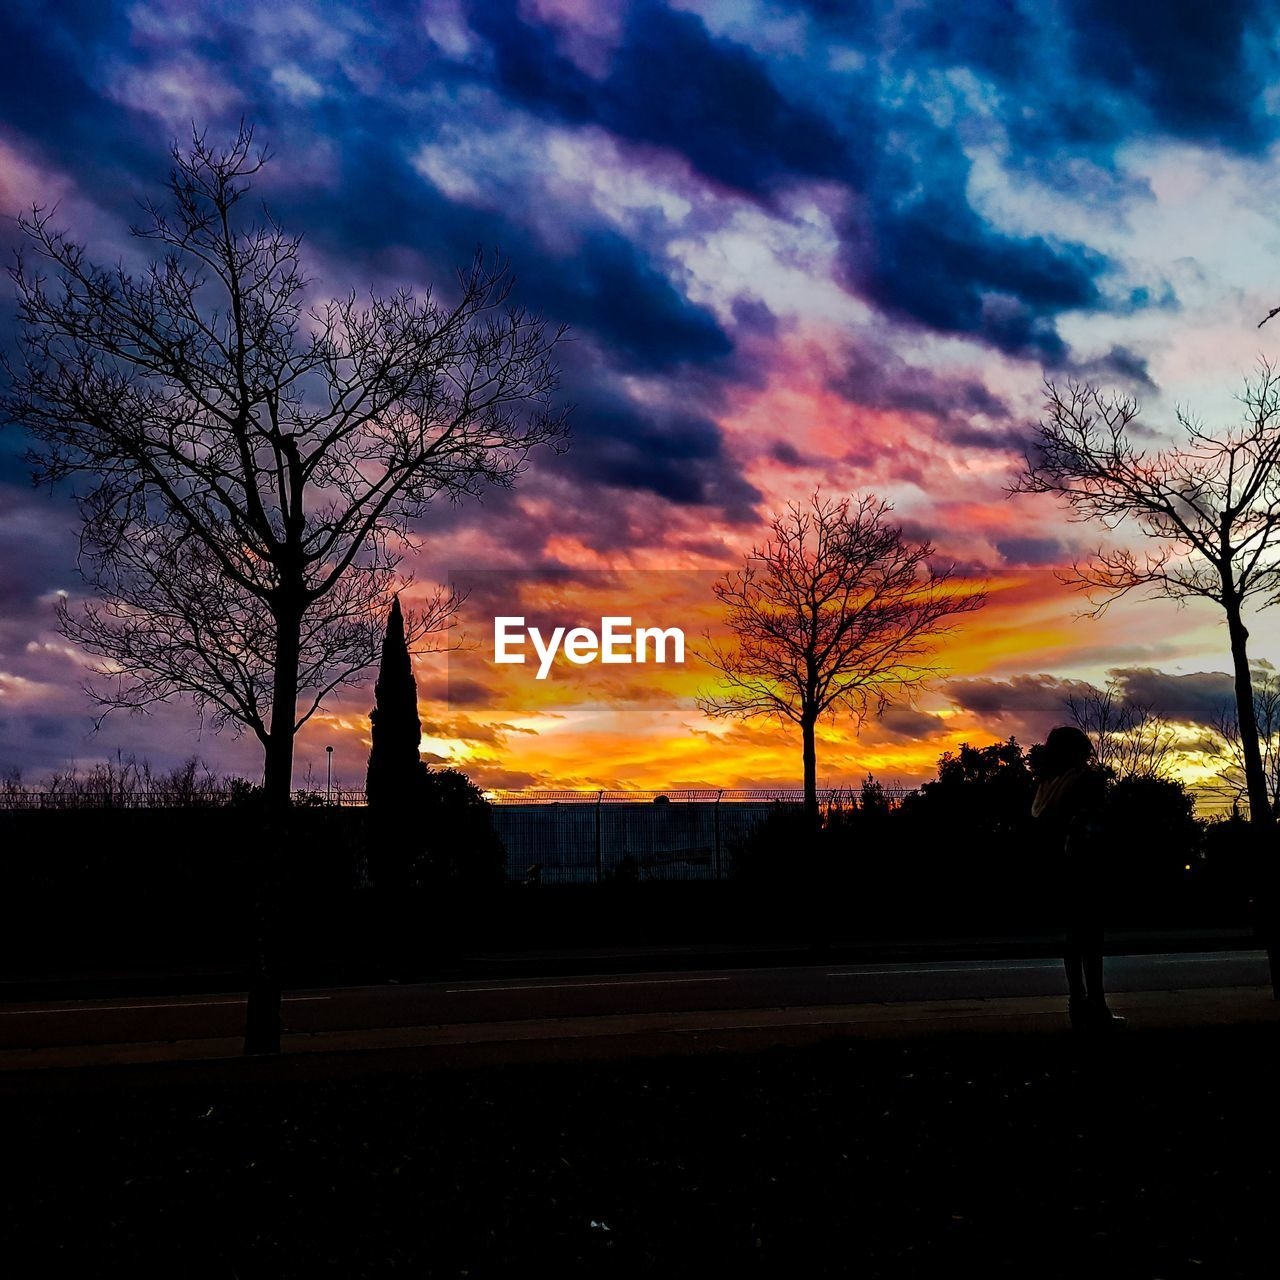 sky, cloud - sky, sunset, tree, silhouette, plant, beauty in nature, orange color, nature, architecture, no people, building exterior, built structure, scenics - nature, road, bare tree, tranquility, city, tranquil scene, outdoors